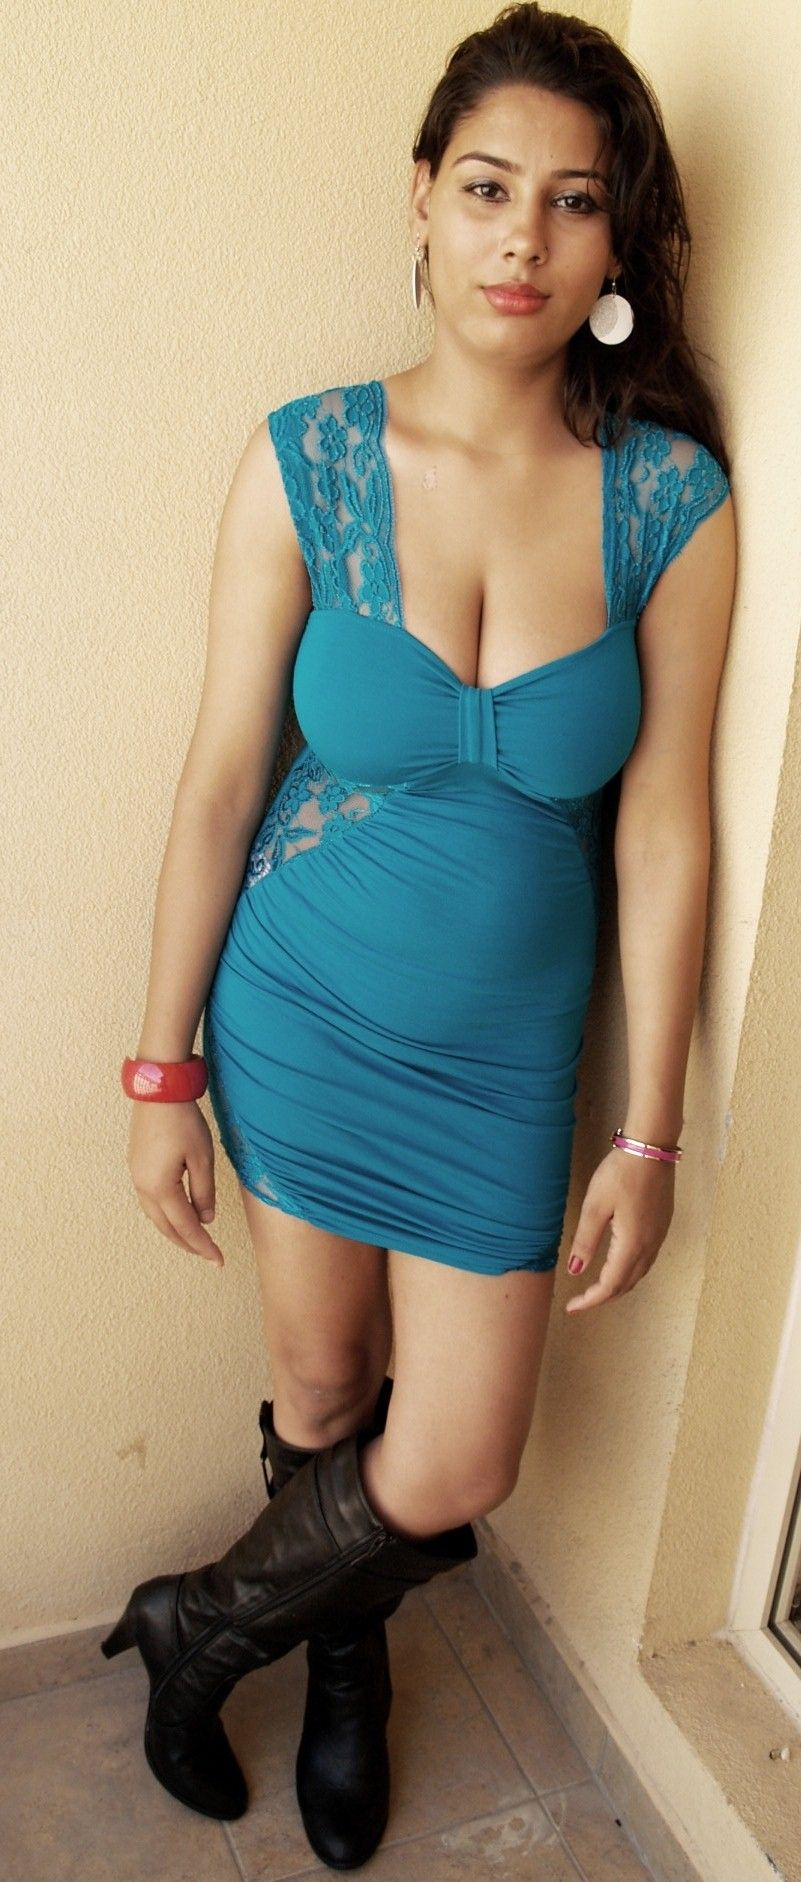 Indian escorts perth